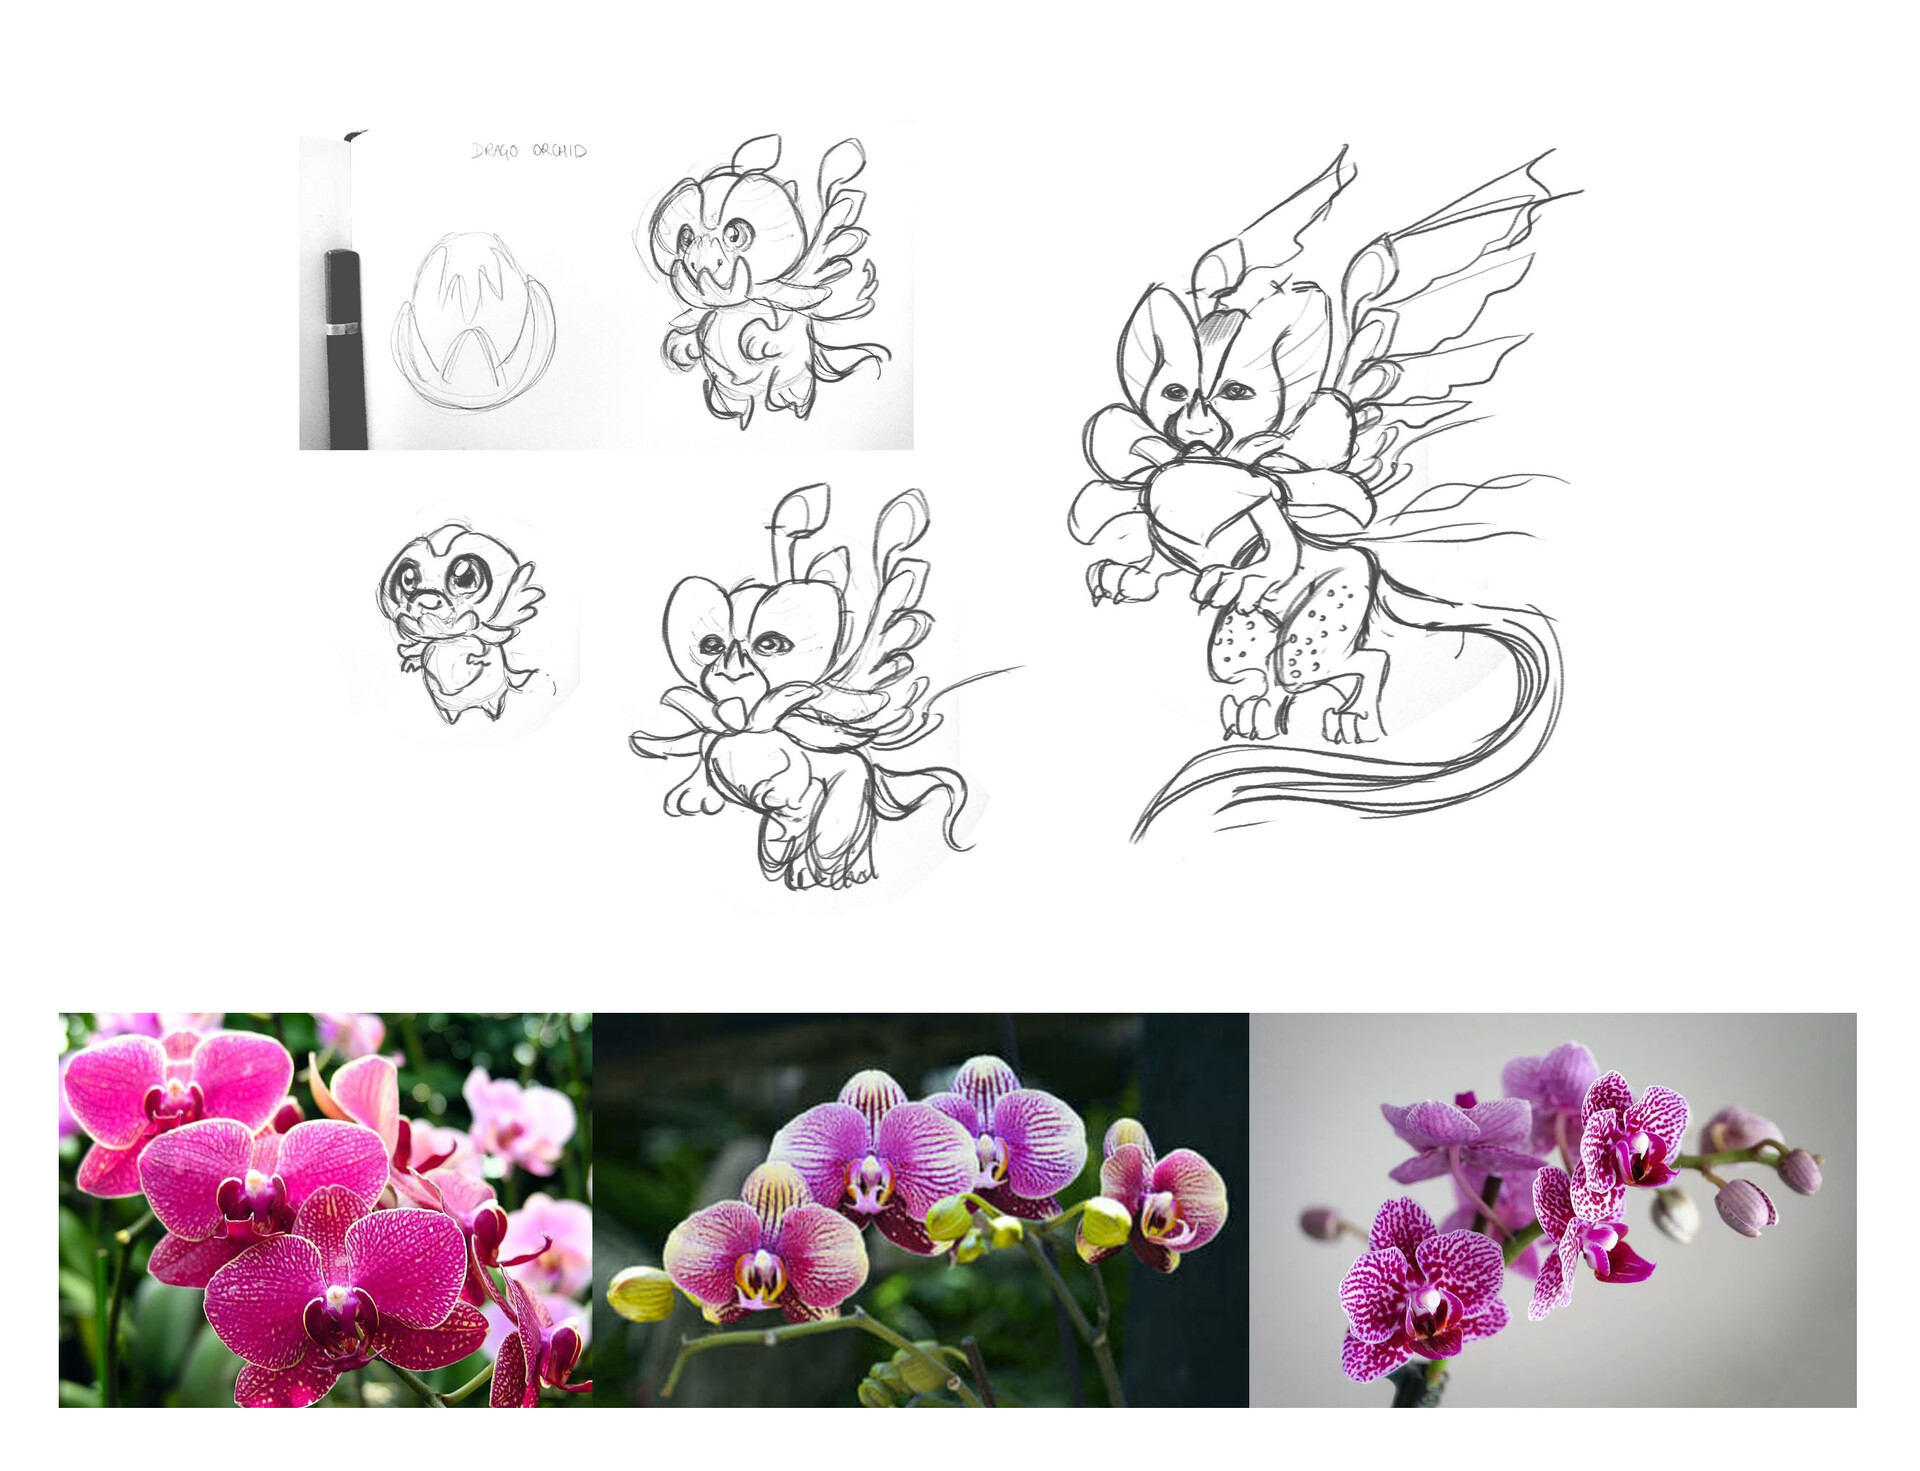 Orchid Dragon - Sketches and References